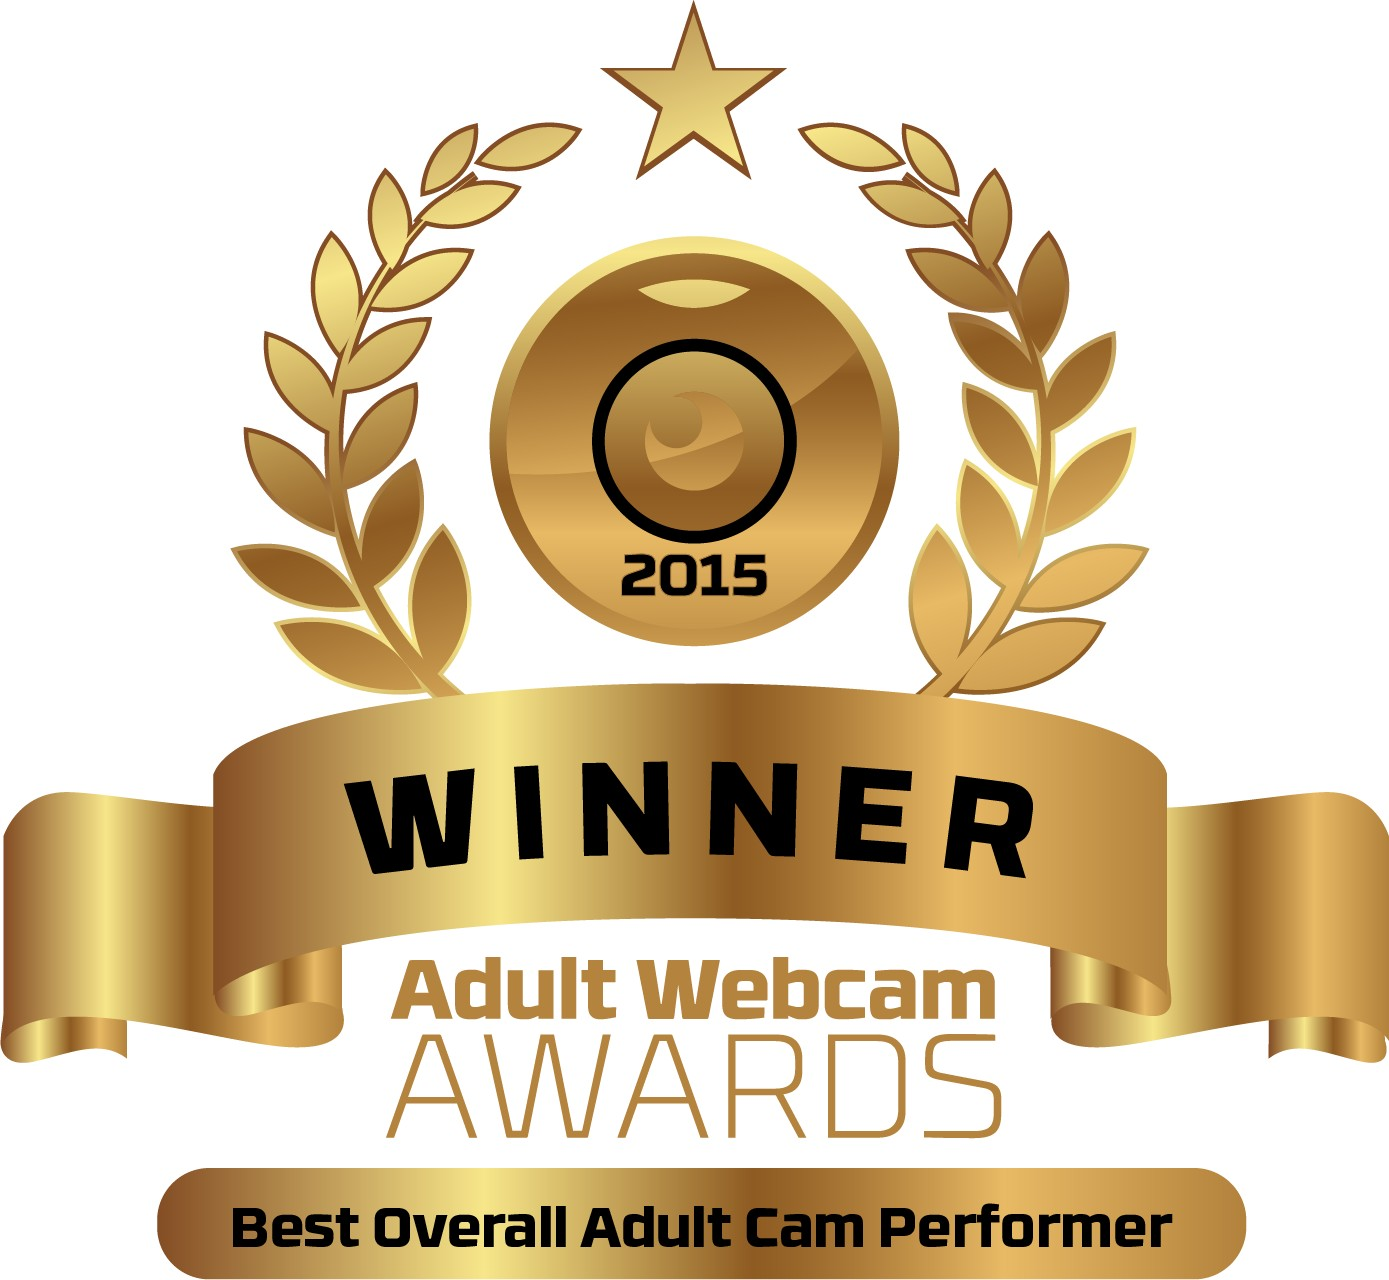 The Coveted Mark of the Very Best in the Adult Webcam Industry